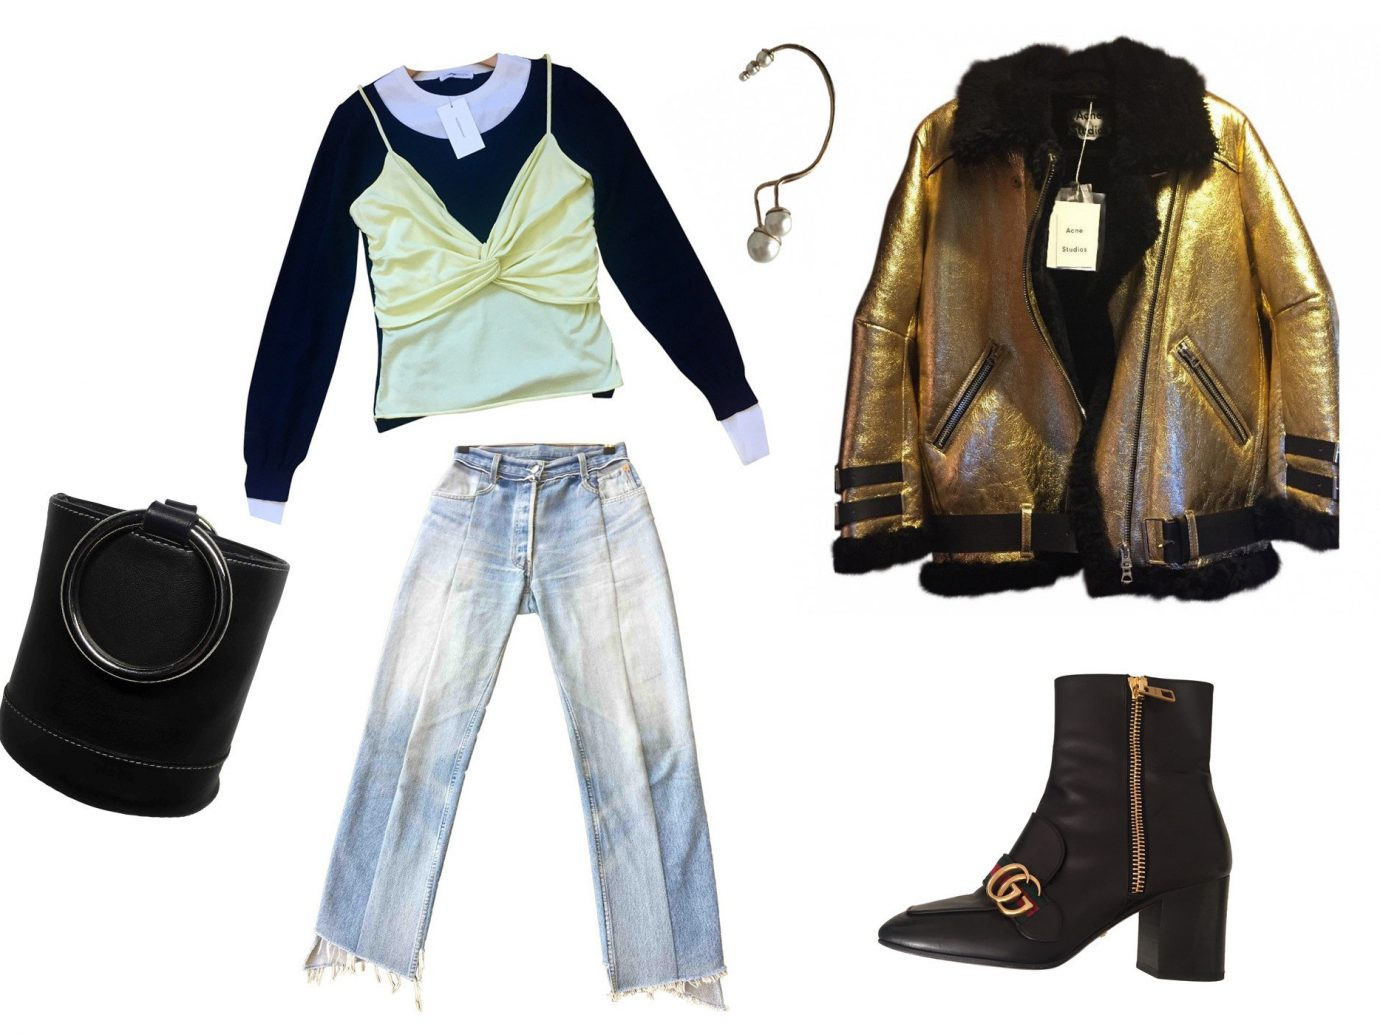 Style + Design clothing denim outerwear leather sleeve product jeans formal wear jacket brand textile costume